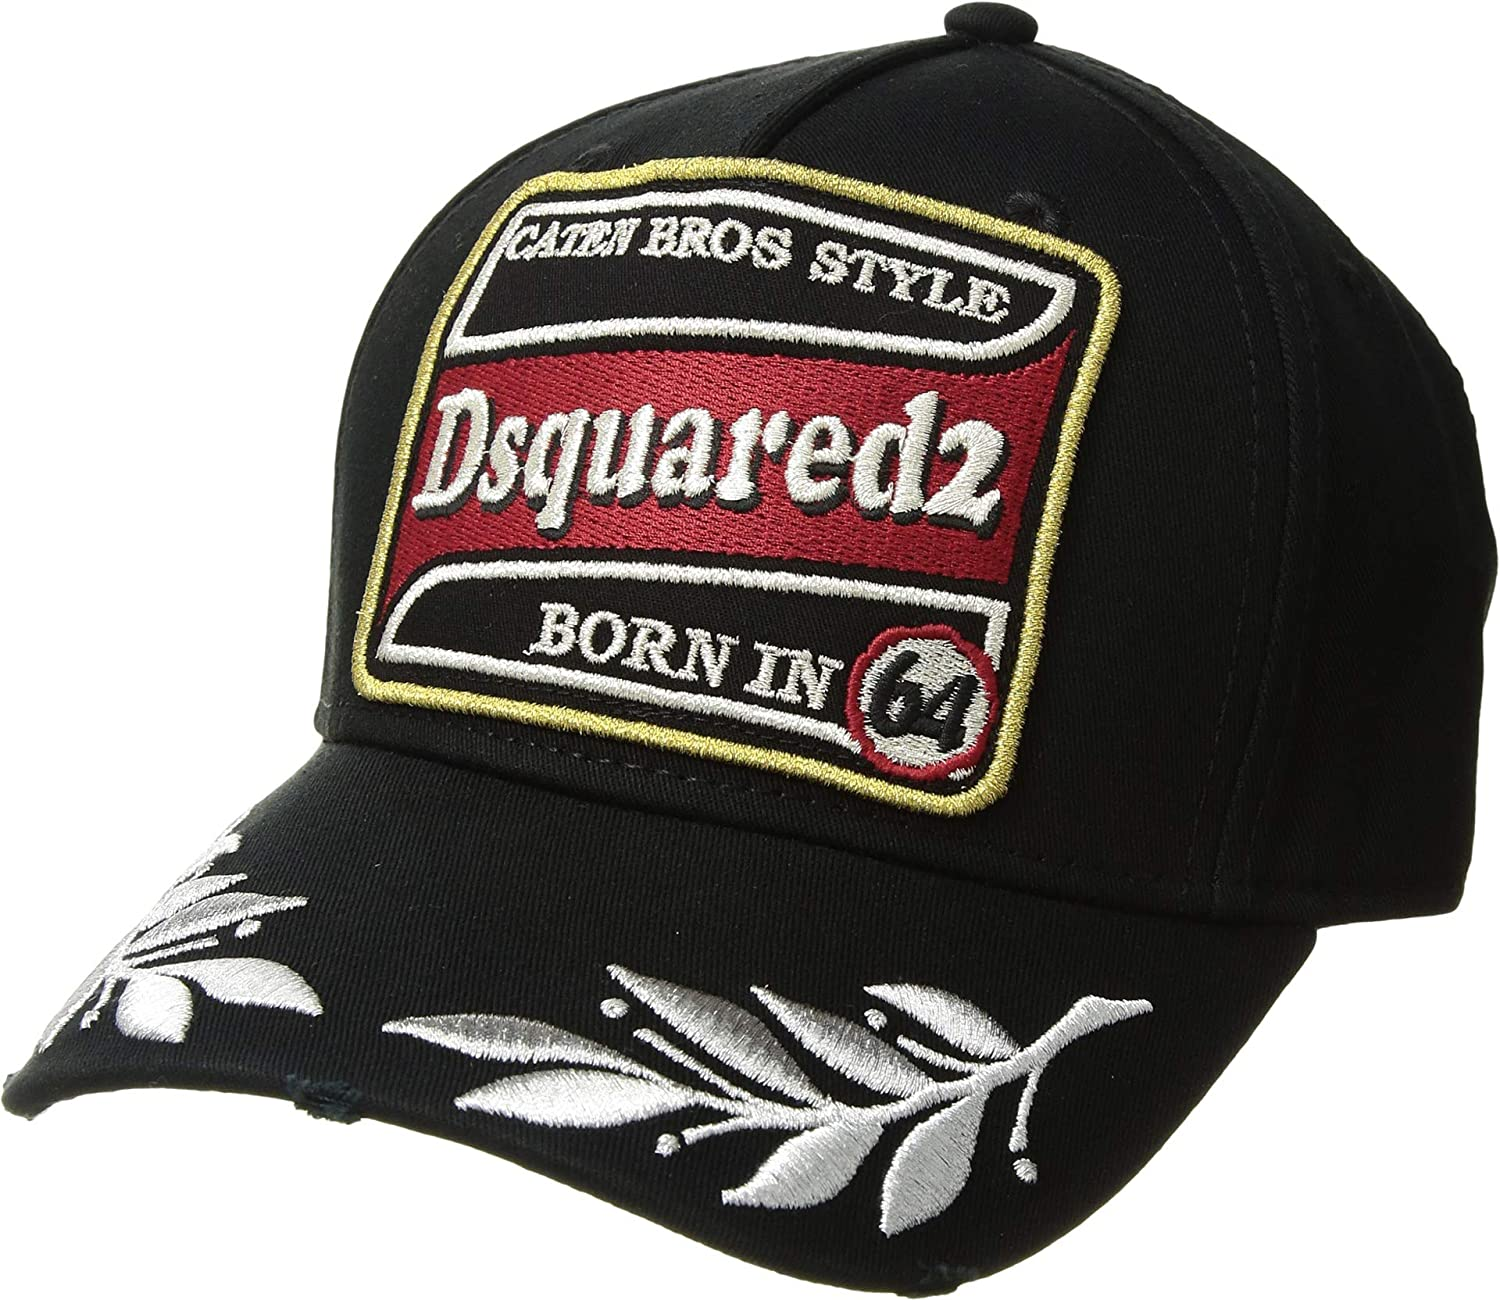 0e871581922 Amazon.com  DSQUARED2 Men s Embroidered Patch Baseball Cap Black Silver One  Size  Clothing